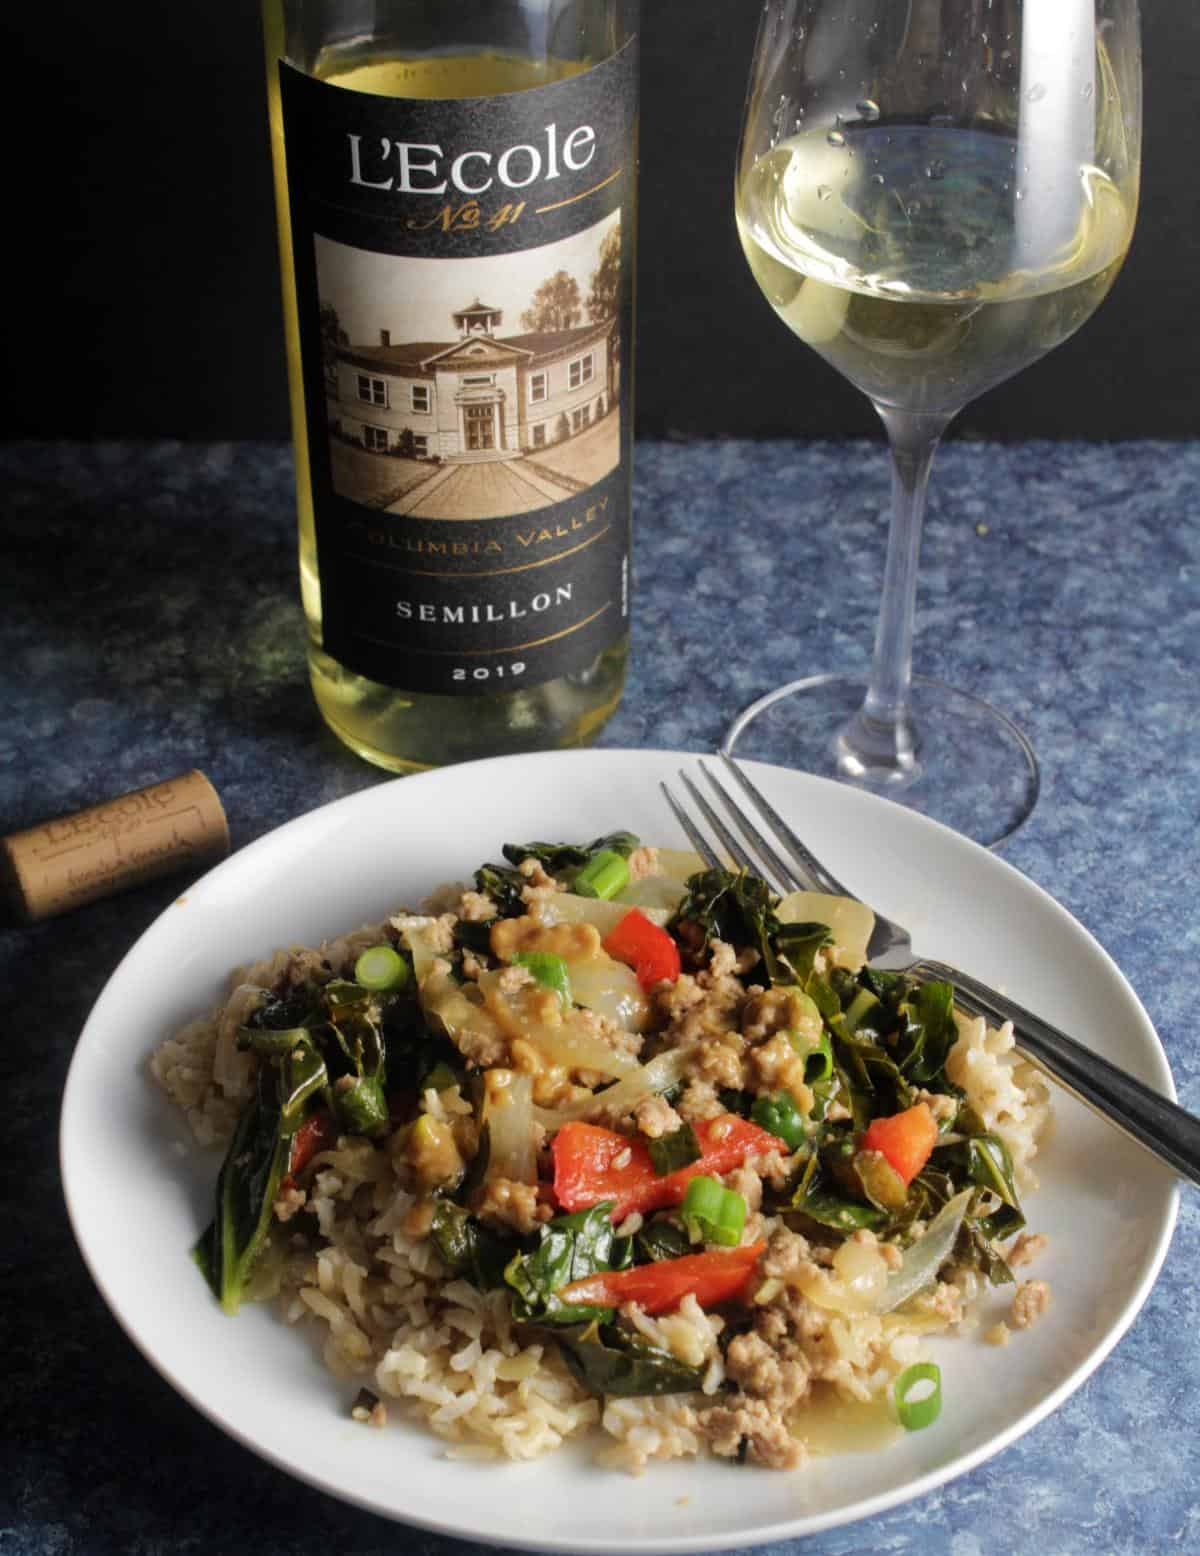 ground pork stir fry with collard greens, served over rice. Columbia Valley Semillon wine in the background.